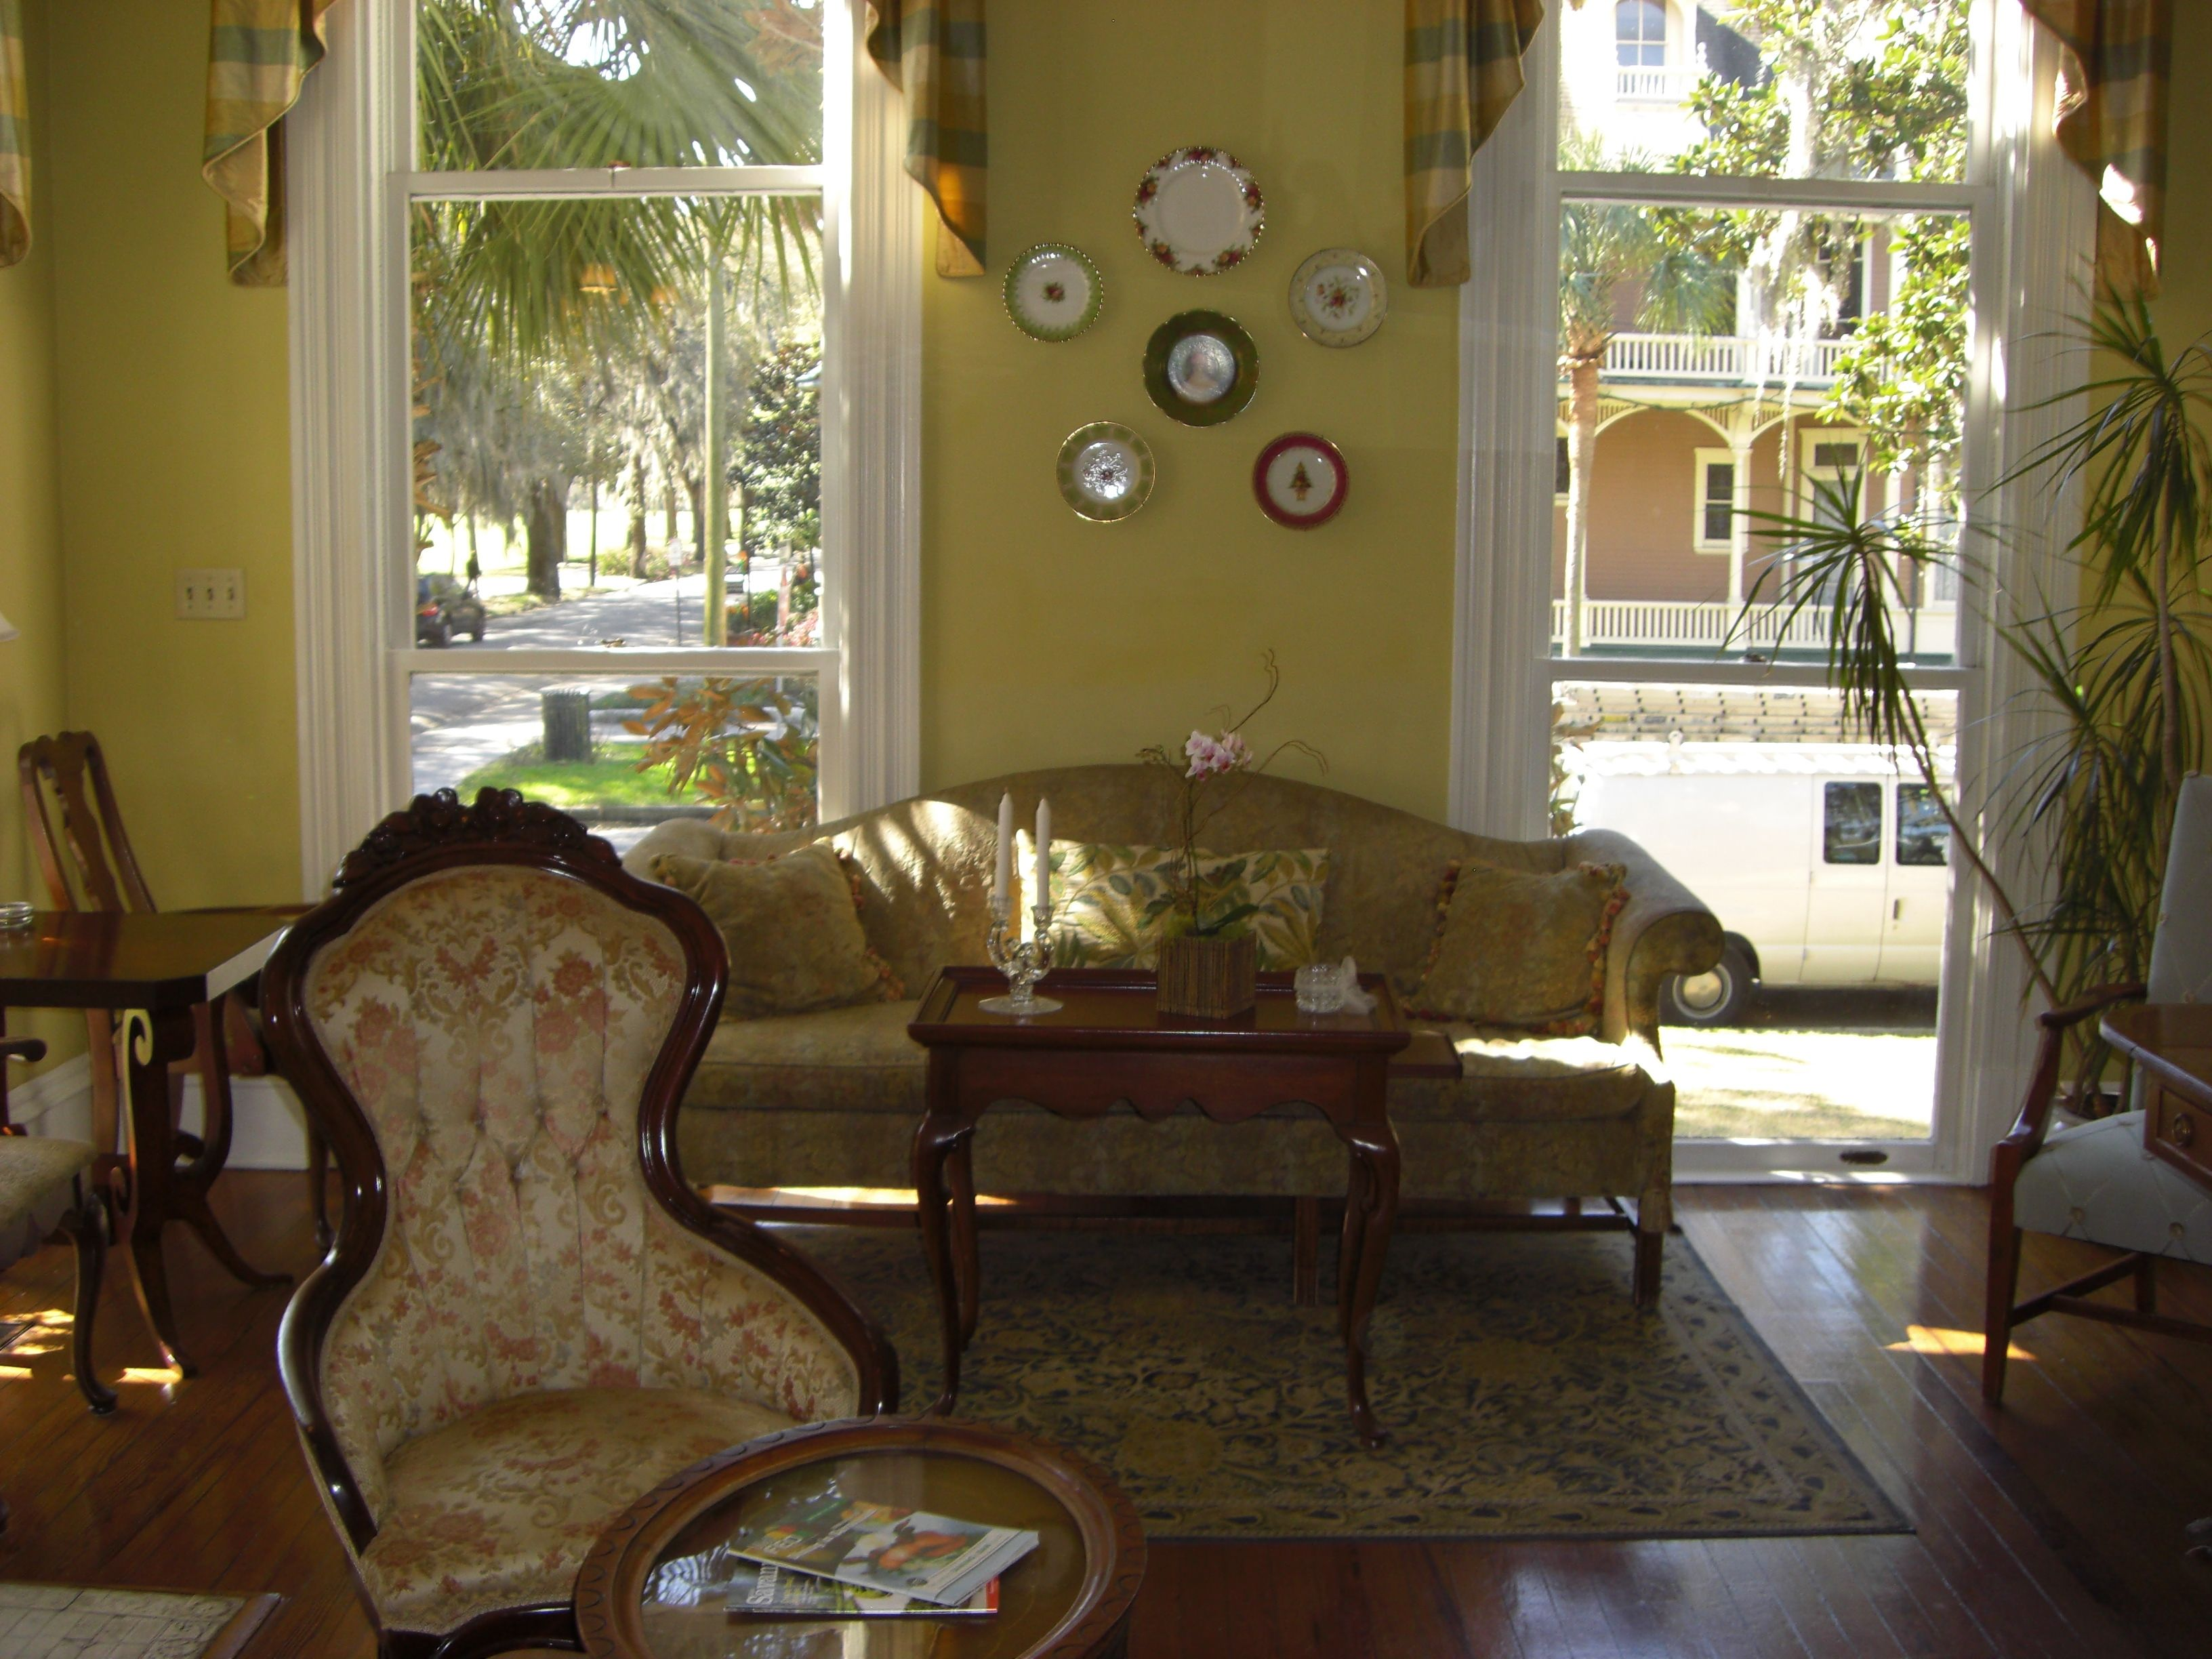 Guests are treated to a blend of comfort and ease at Savannah Bed & Breakfast Inn bed and breakfast in Savannah. Amp up your vacation game by booking one of the hotel's deluxe suites. Savannah Bed & Breakfast Inn provides guests with complimentary wifi during the duration of their shamodelslk.tk't pay for another breakfast sandwich while on vacation.